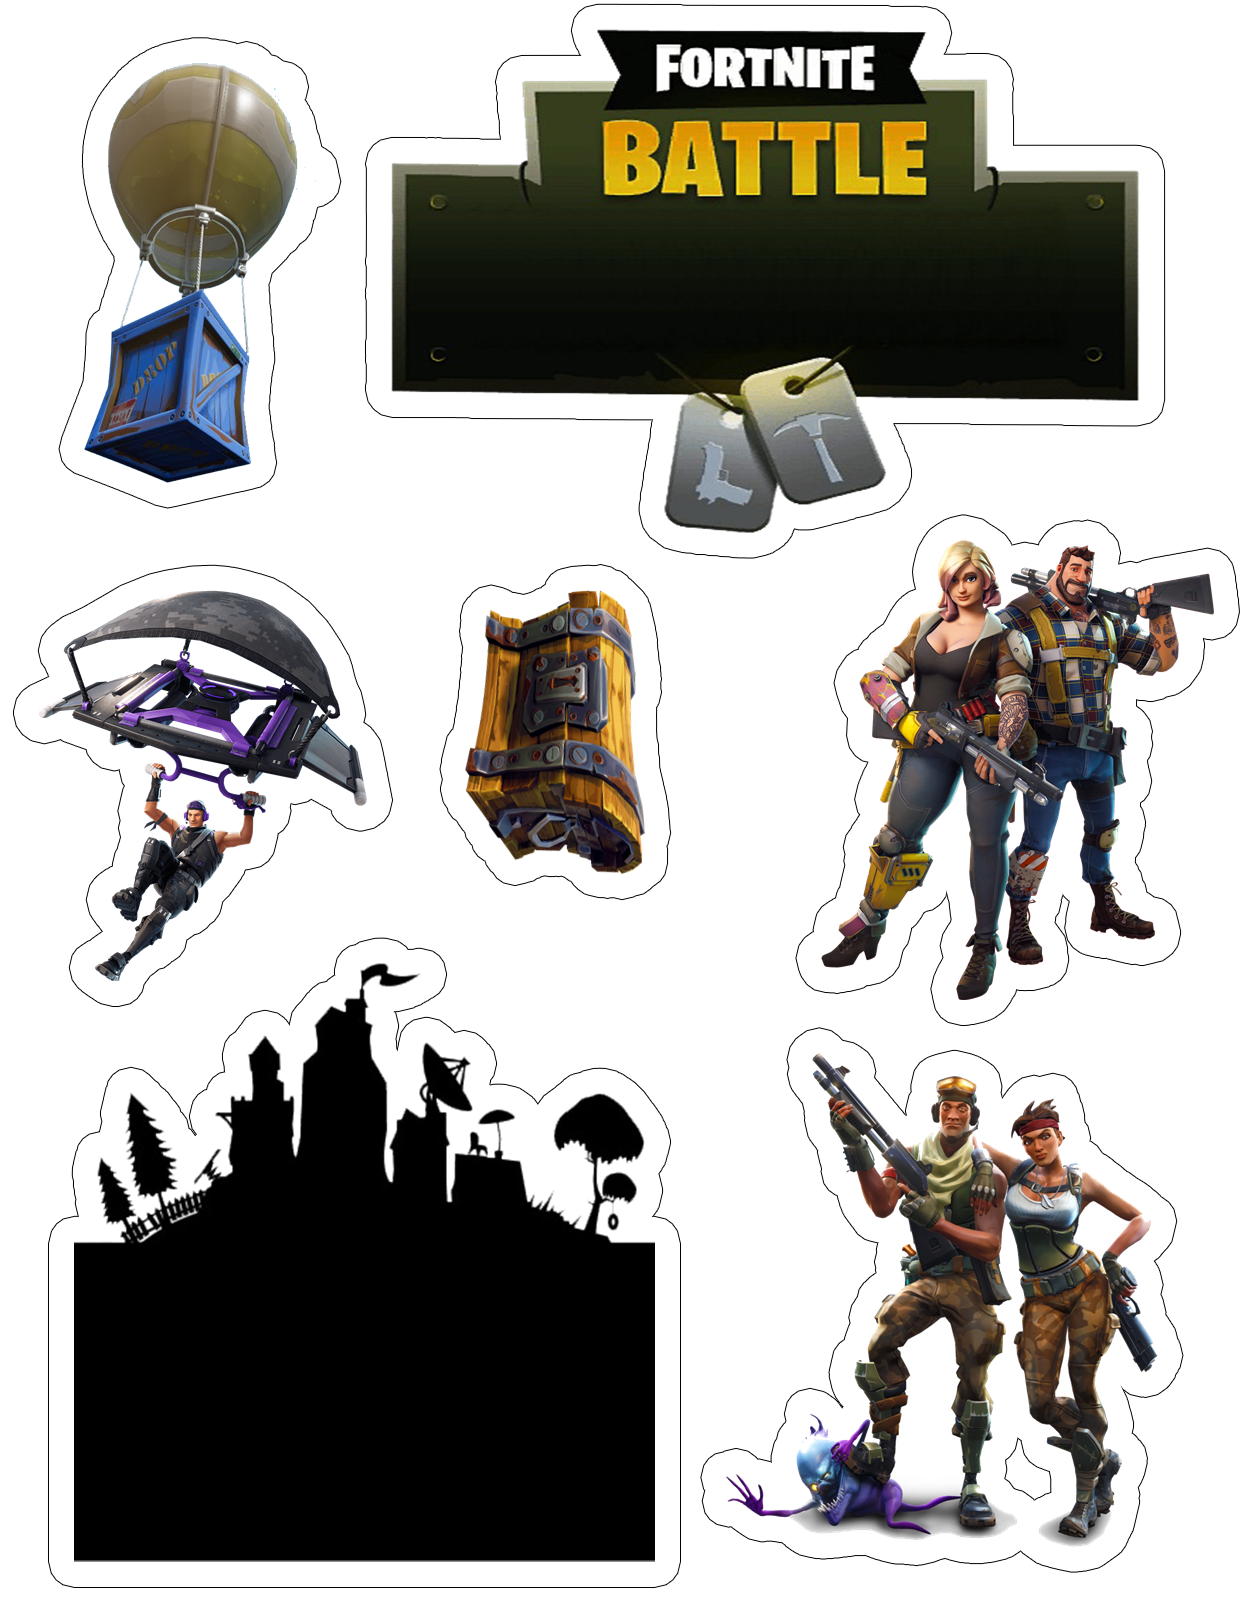 image about Fortnite Printable Images identified as Fortnite Free of charge Printable Cake Toppers. - Oh My Fiesta! for Geeks